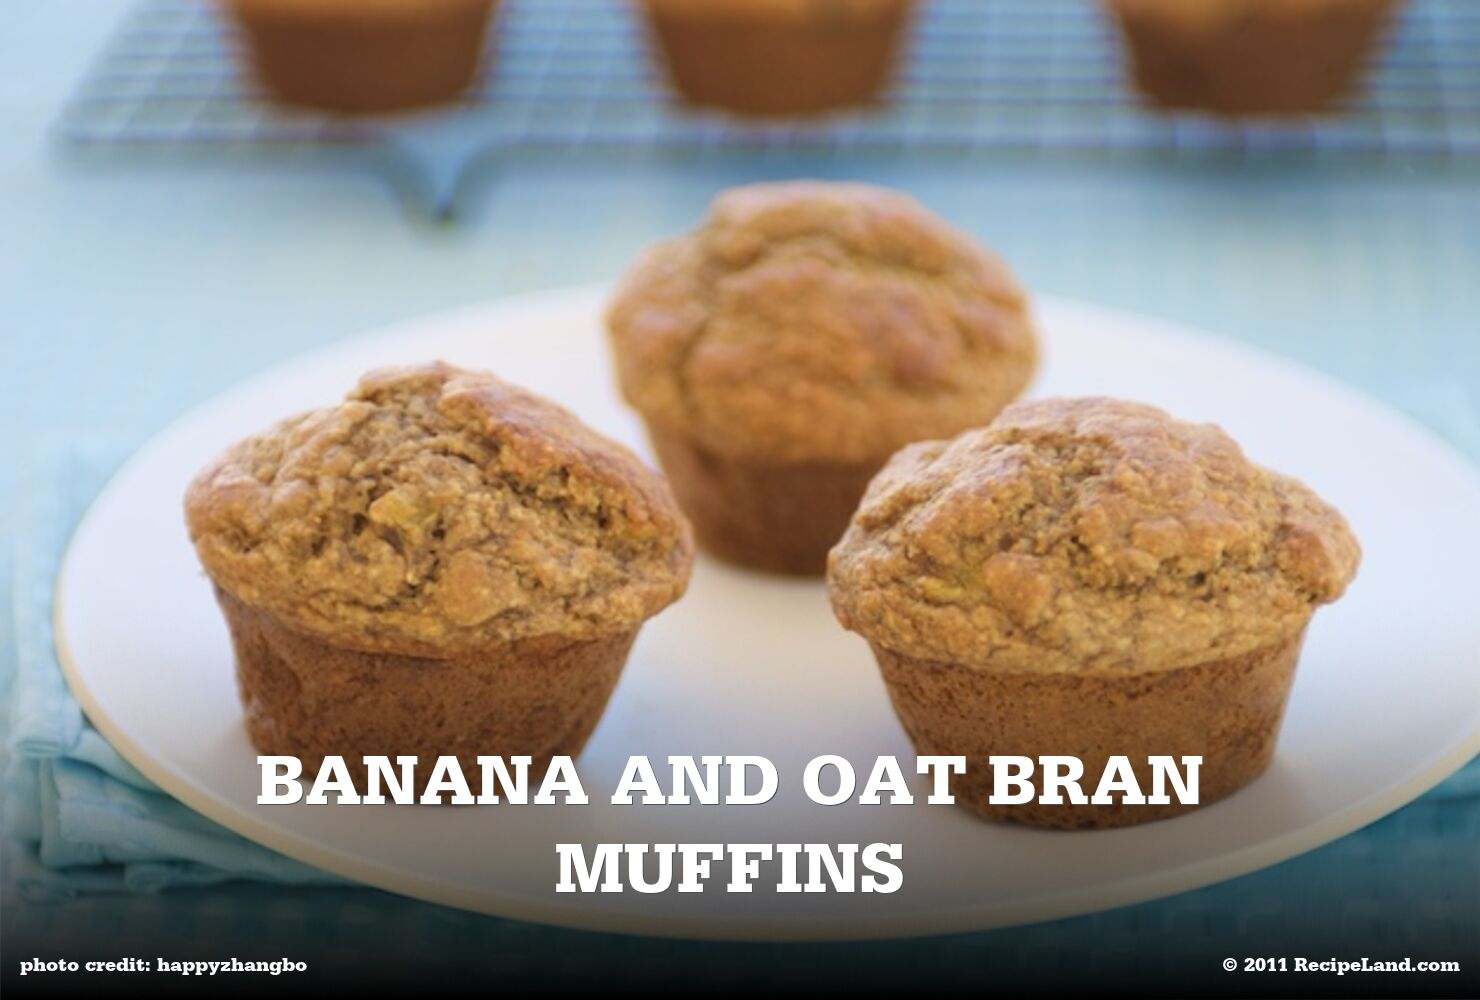 Banana and Oat Bran Muffins